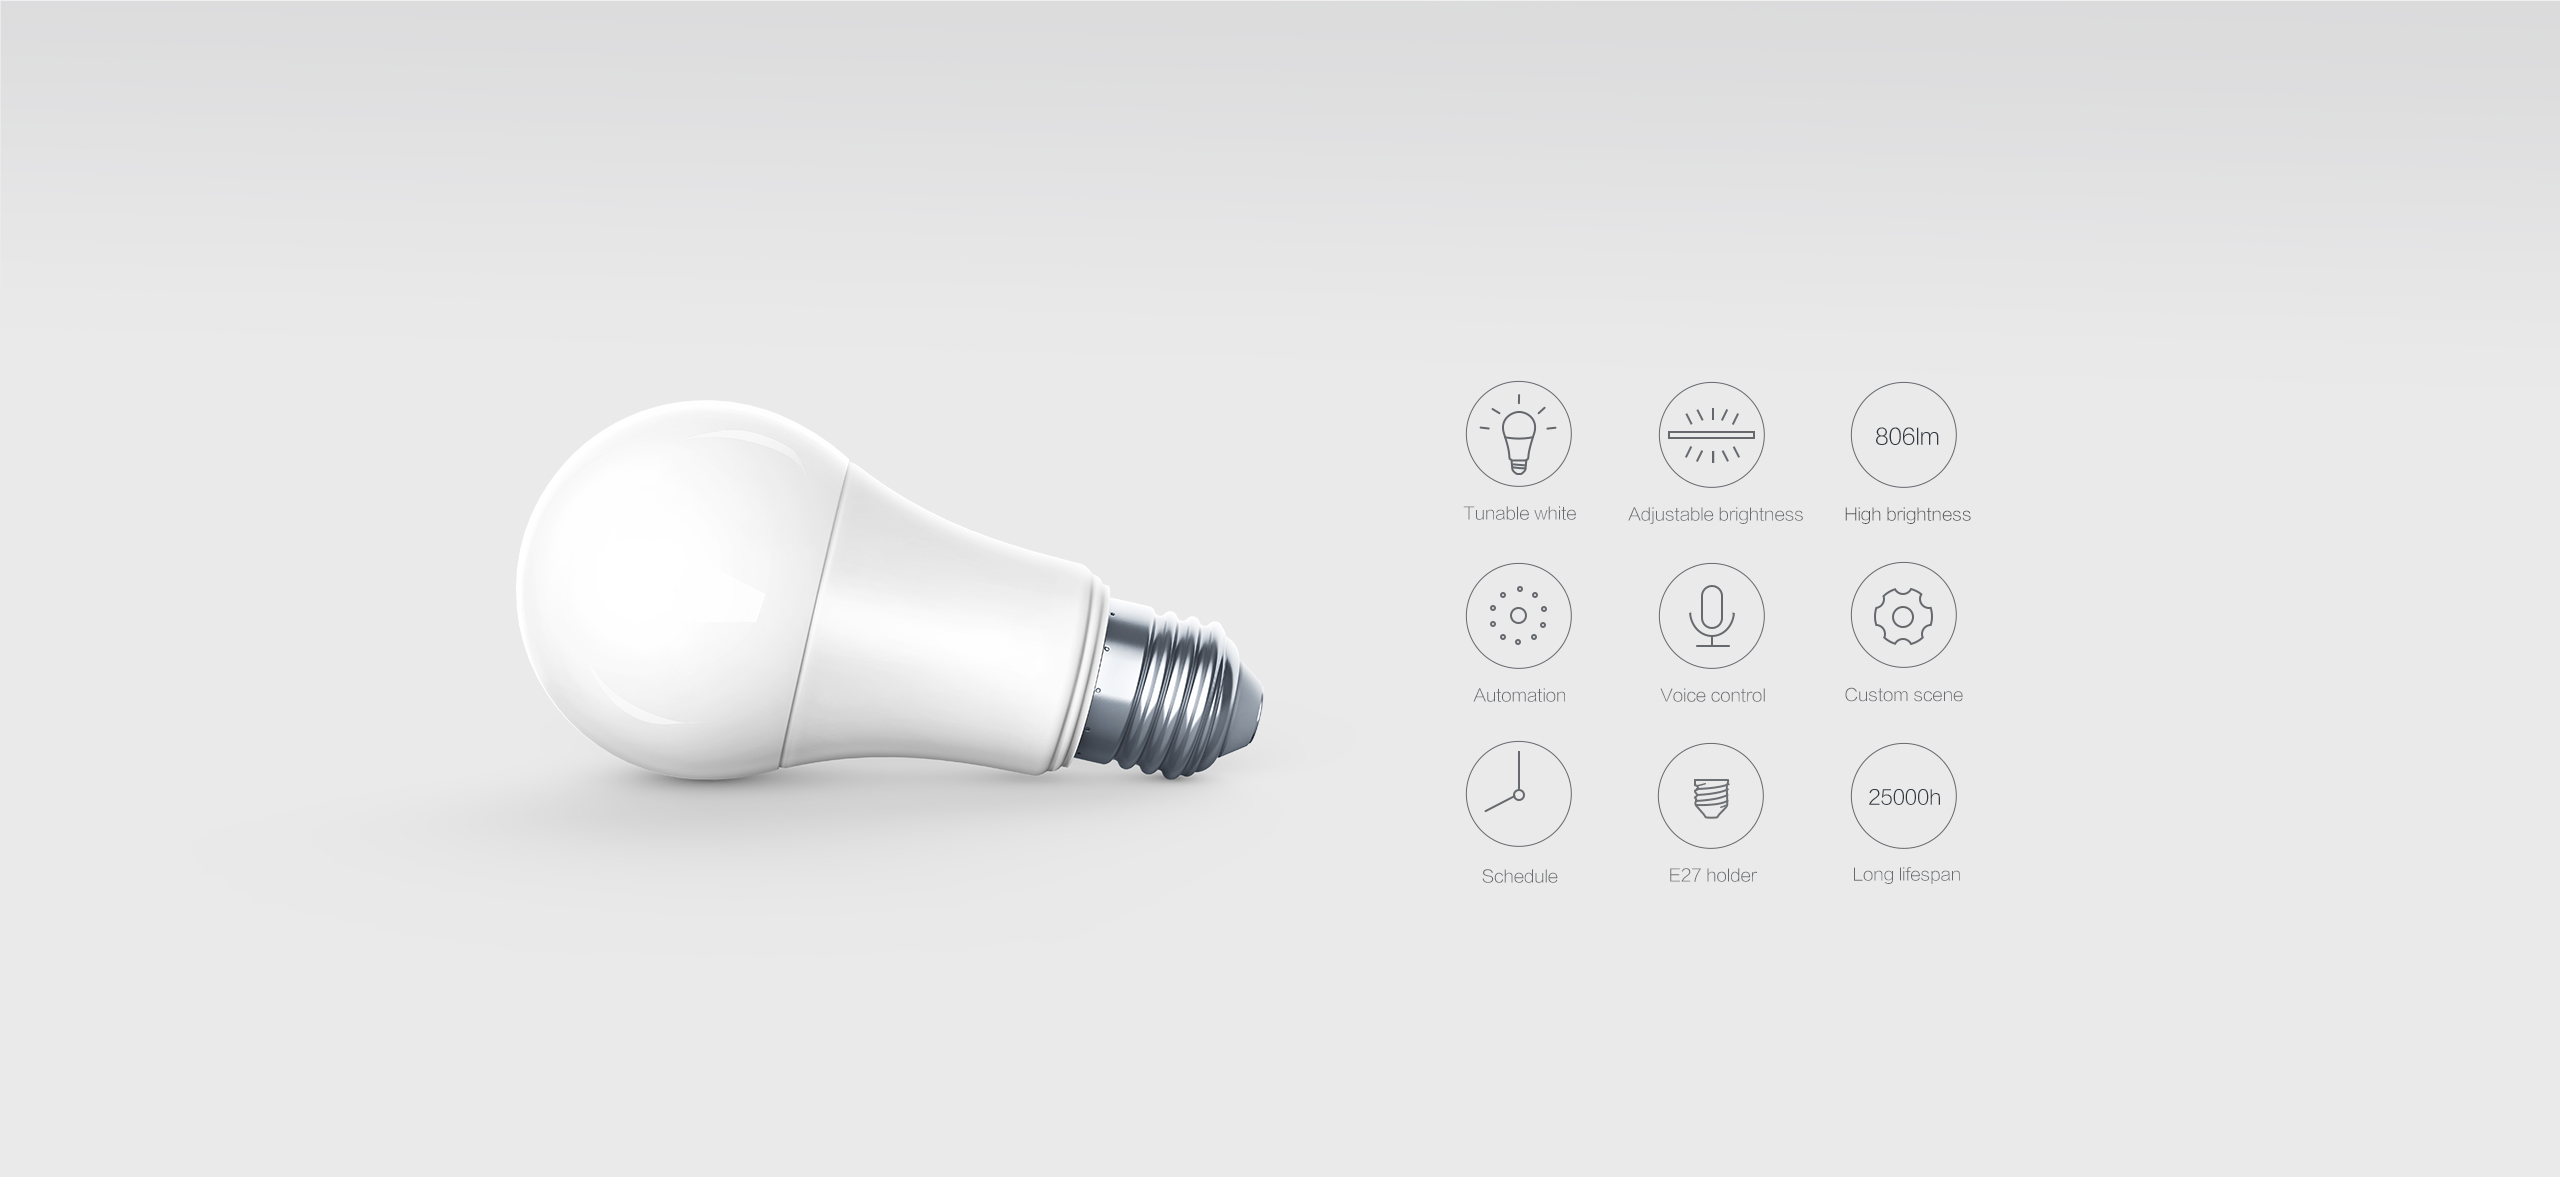 Aqara smart bulb E27 features